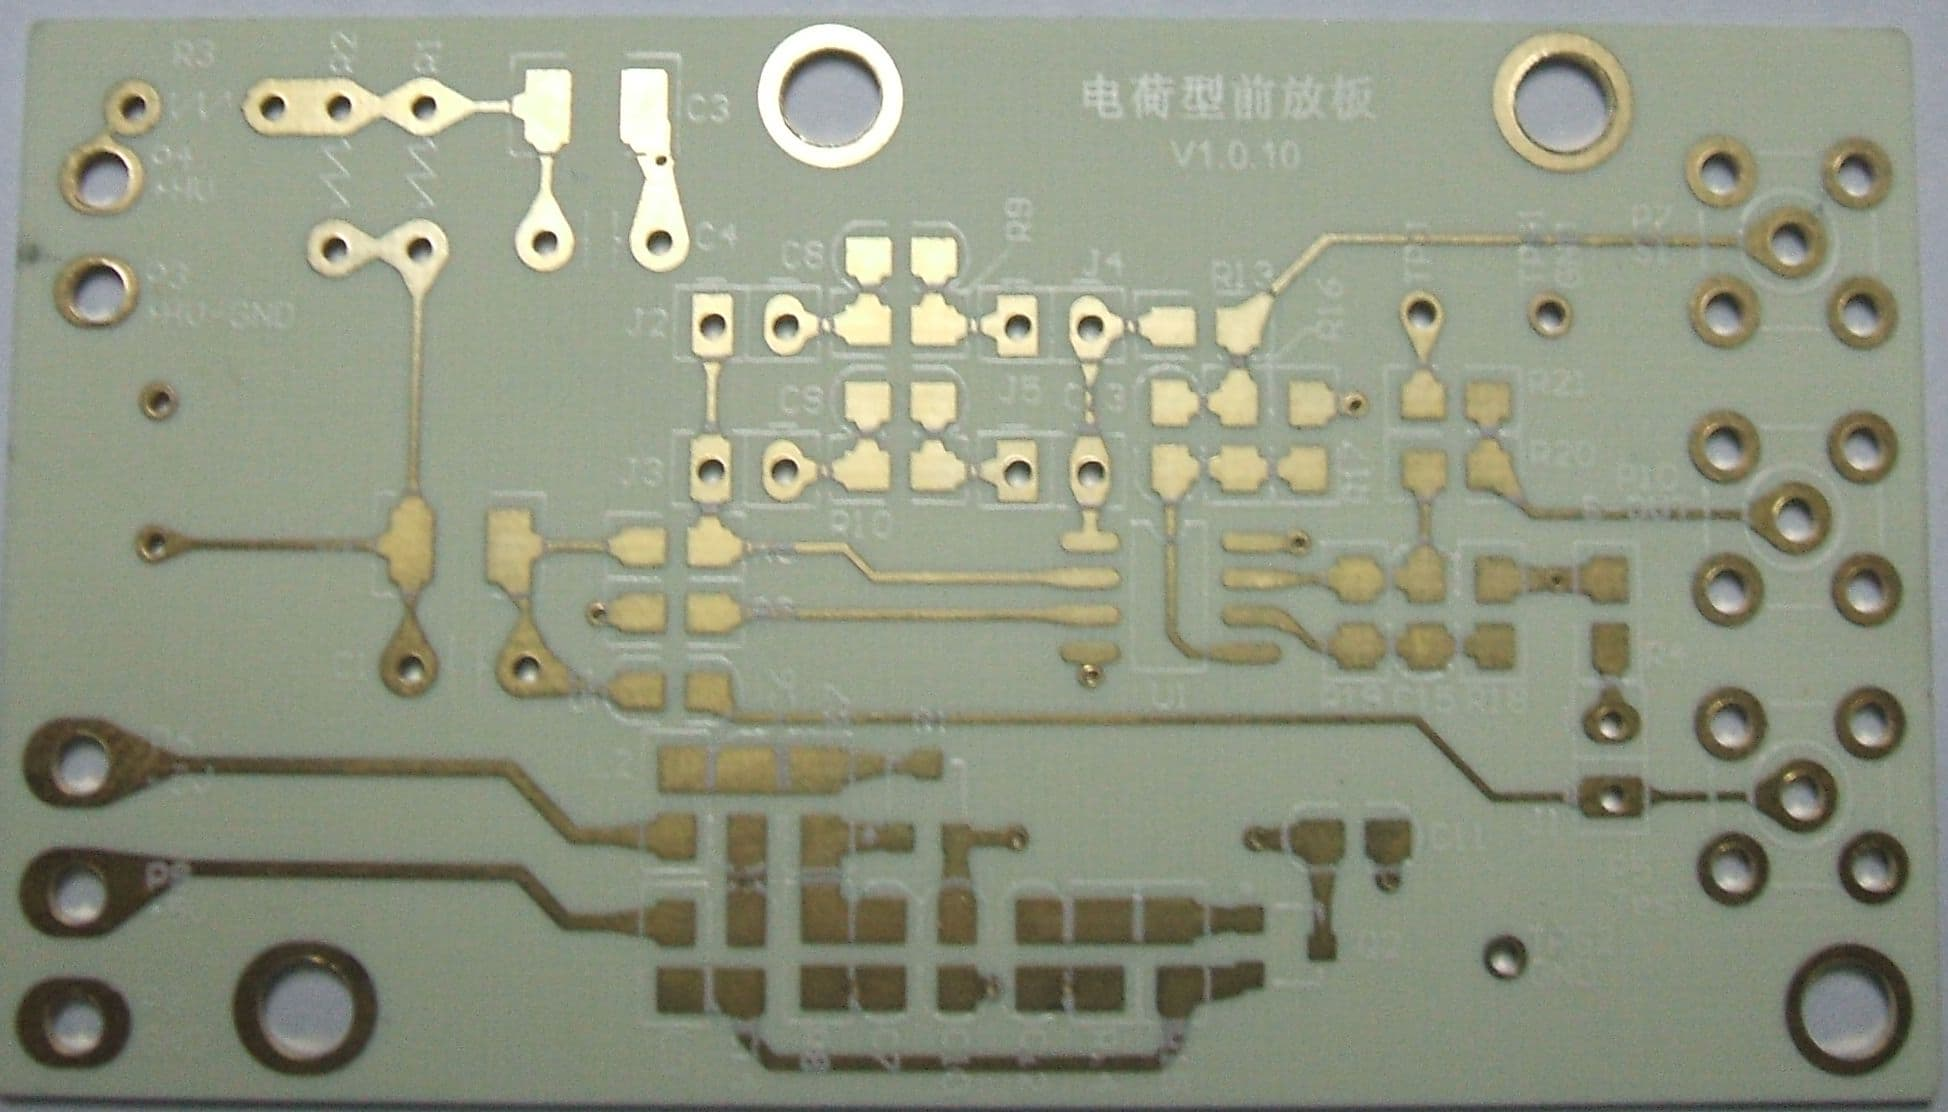 2 rogers pcb china pcb manufacturer china printed circuit board manufacturer from hitech